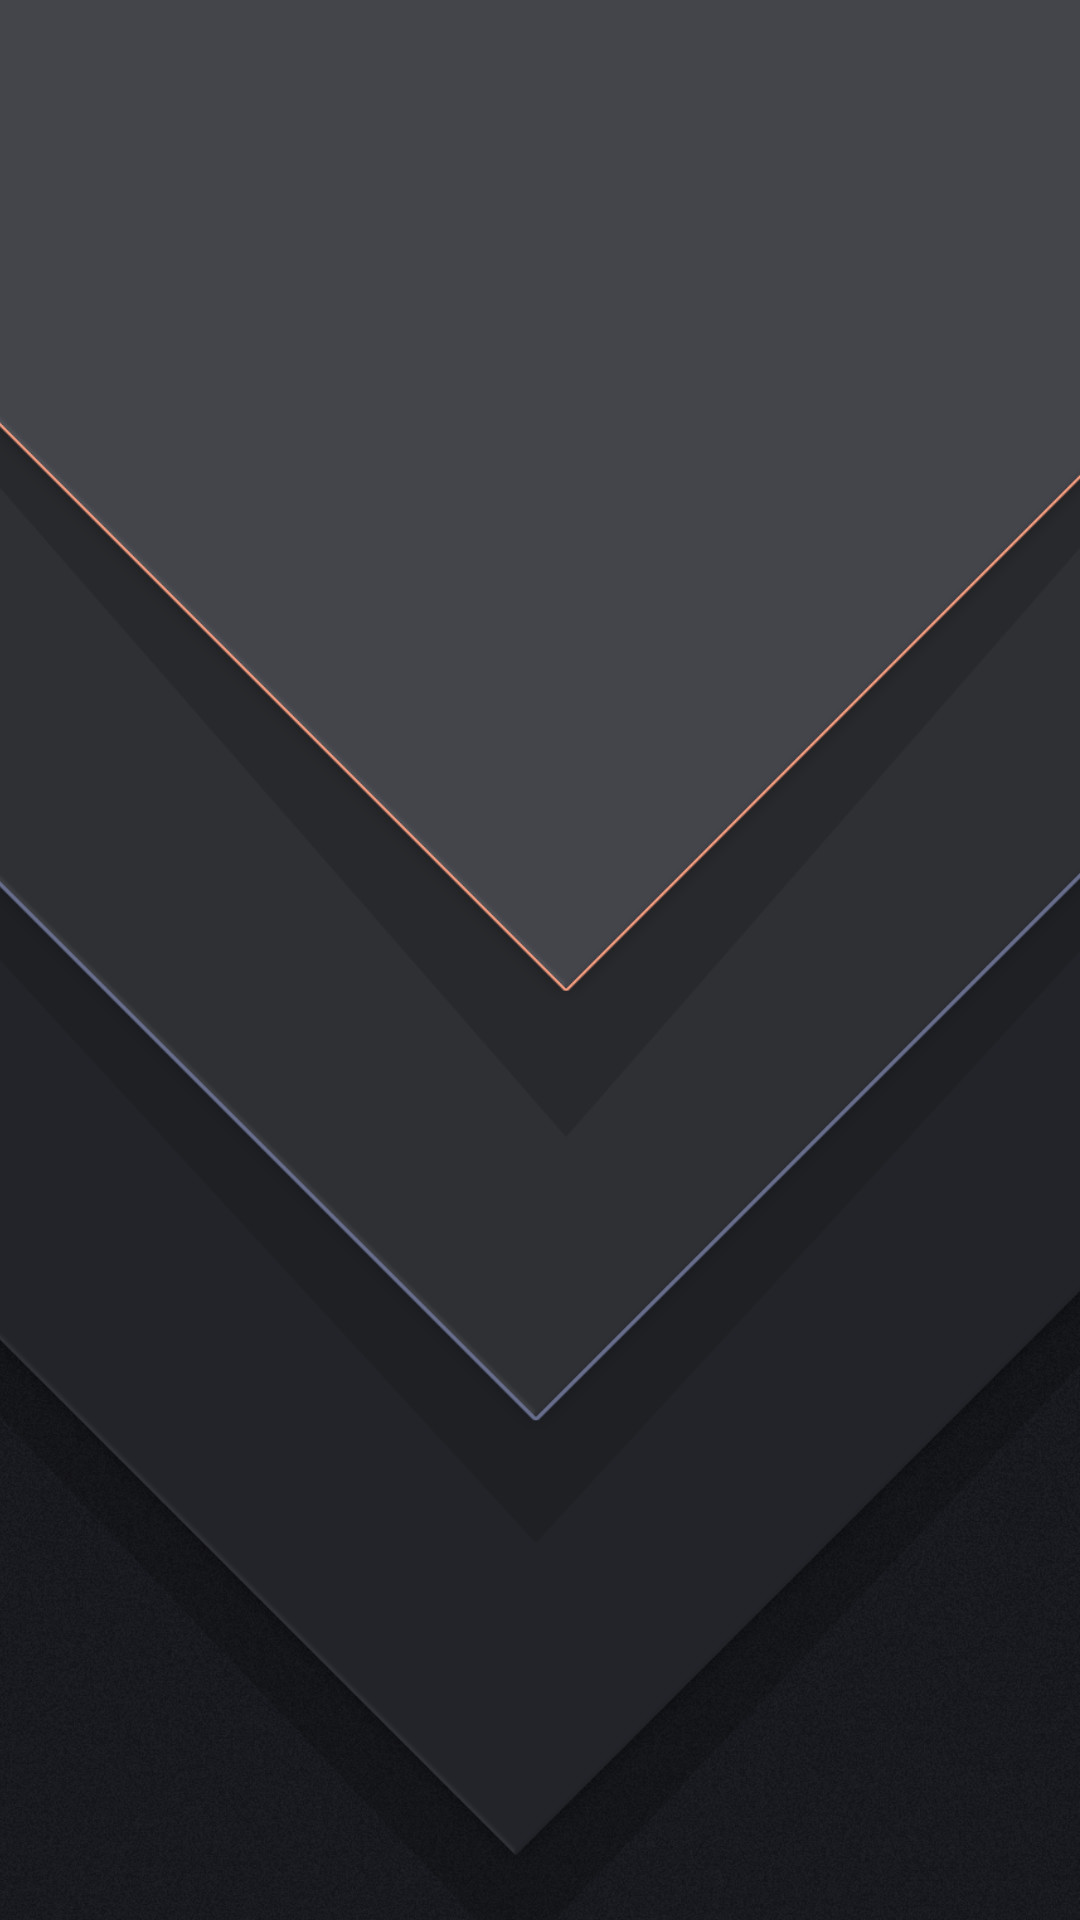 74+ Android Dark Wallpapers on WallpaperPlay.